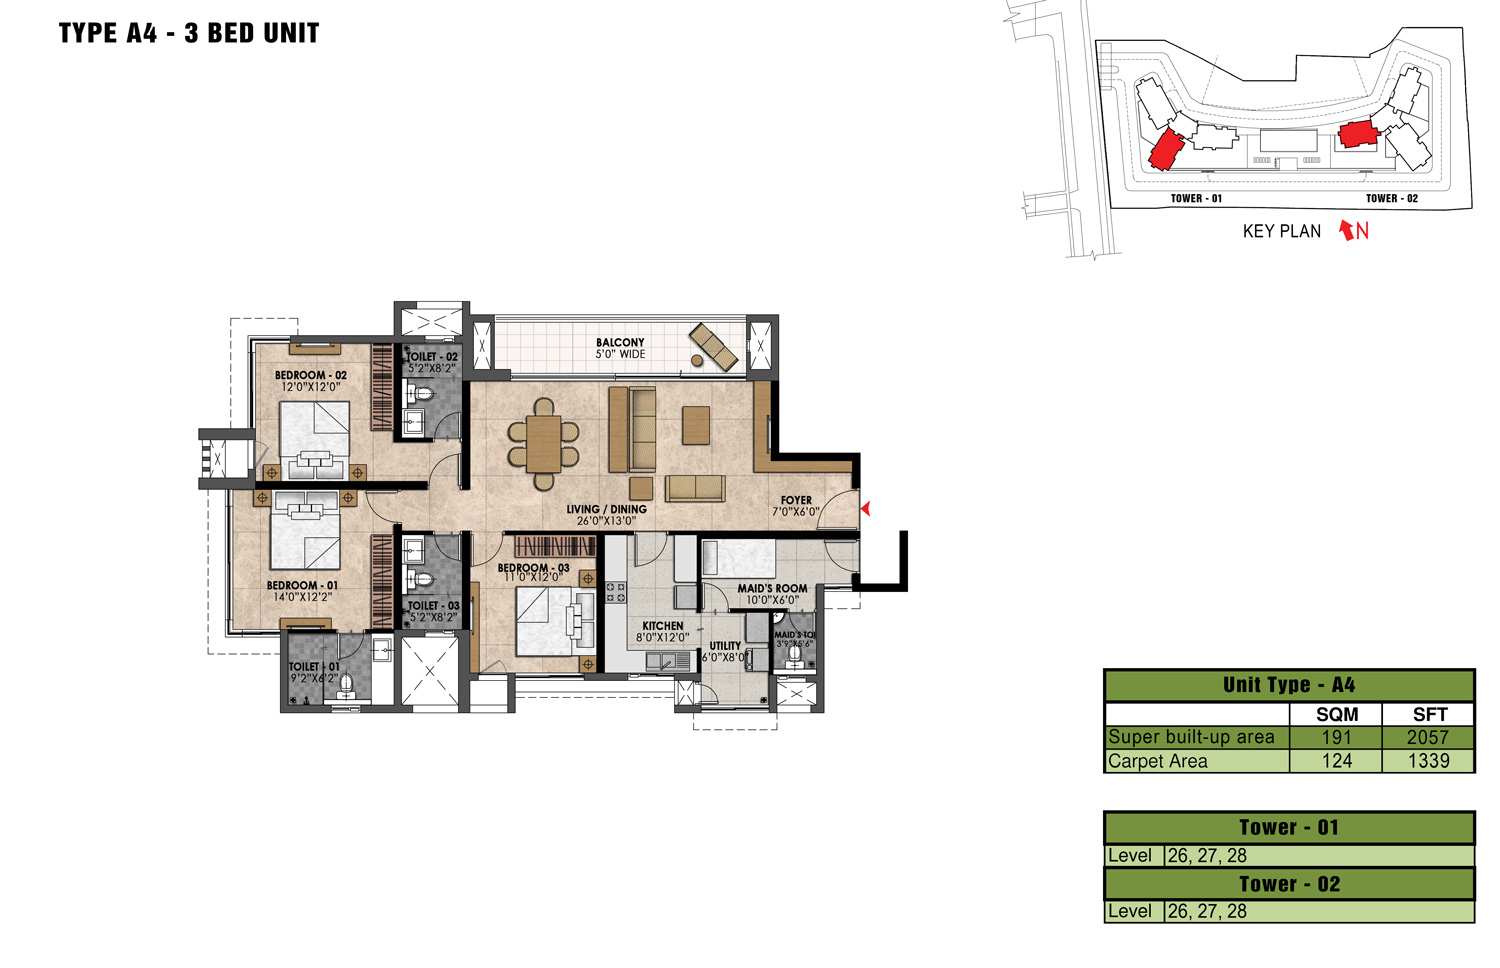 Type A4 - 2057 Sq Ft